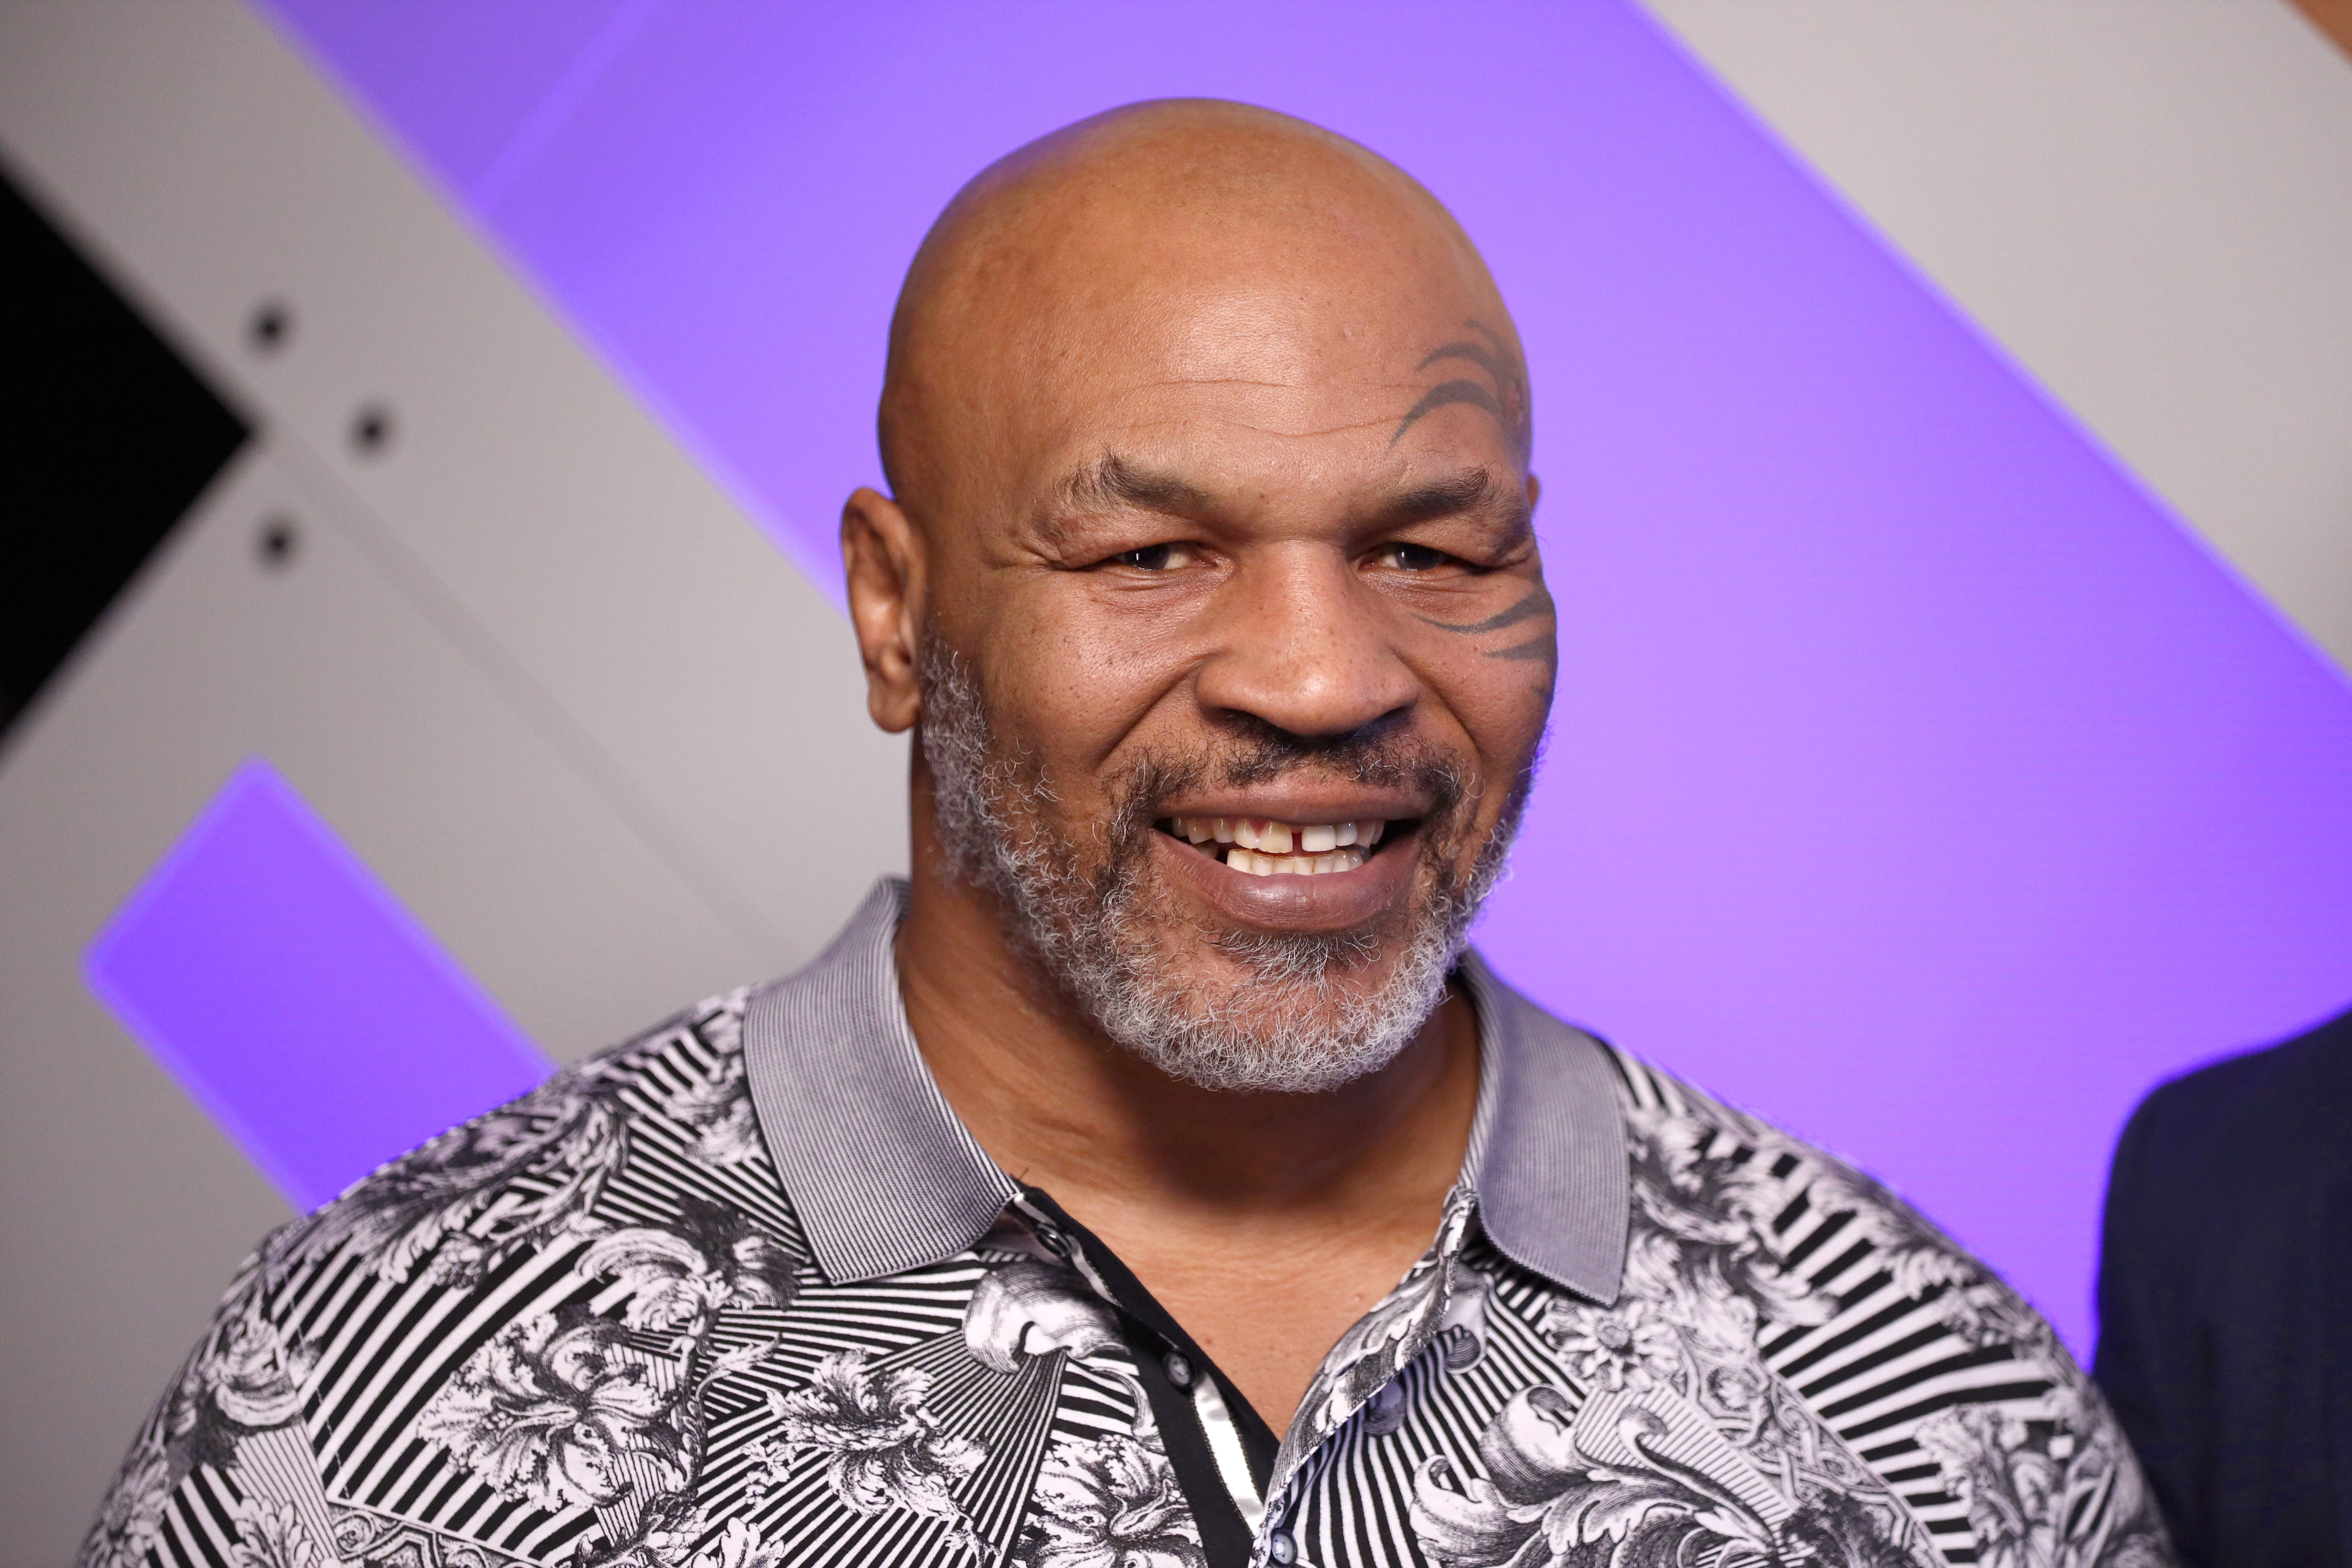 Mike Tyson during the 2019 iHeartRadio Podcast Awards at the iHeartRadio Theater LA on January 18, 2019 | Photo: Getty Images